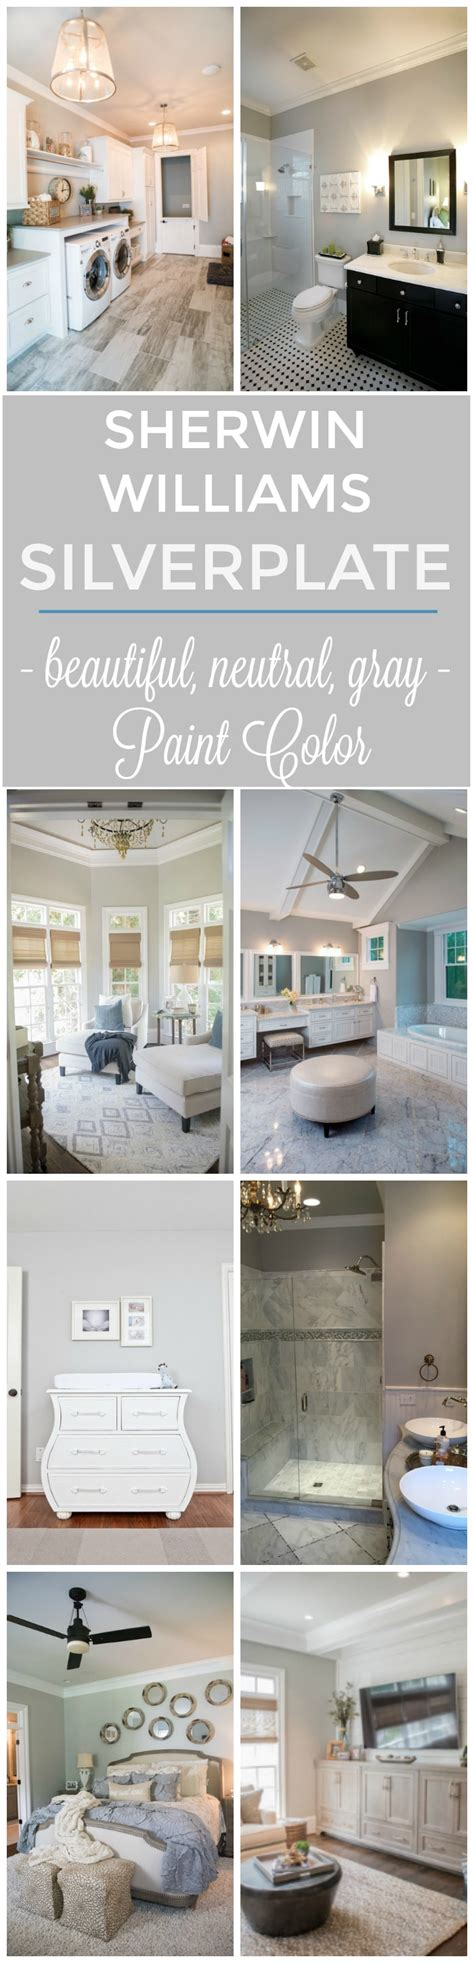 sherwin williams silverplate paint color a beautiful neutral gray setting for four